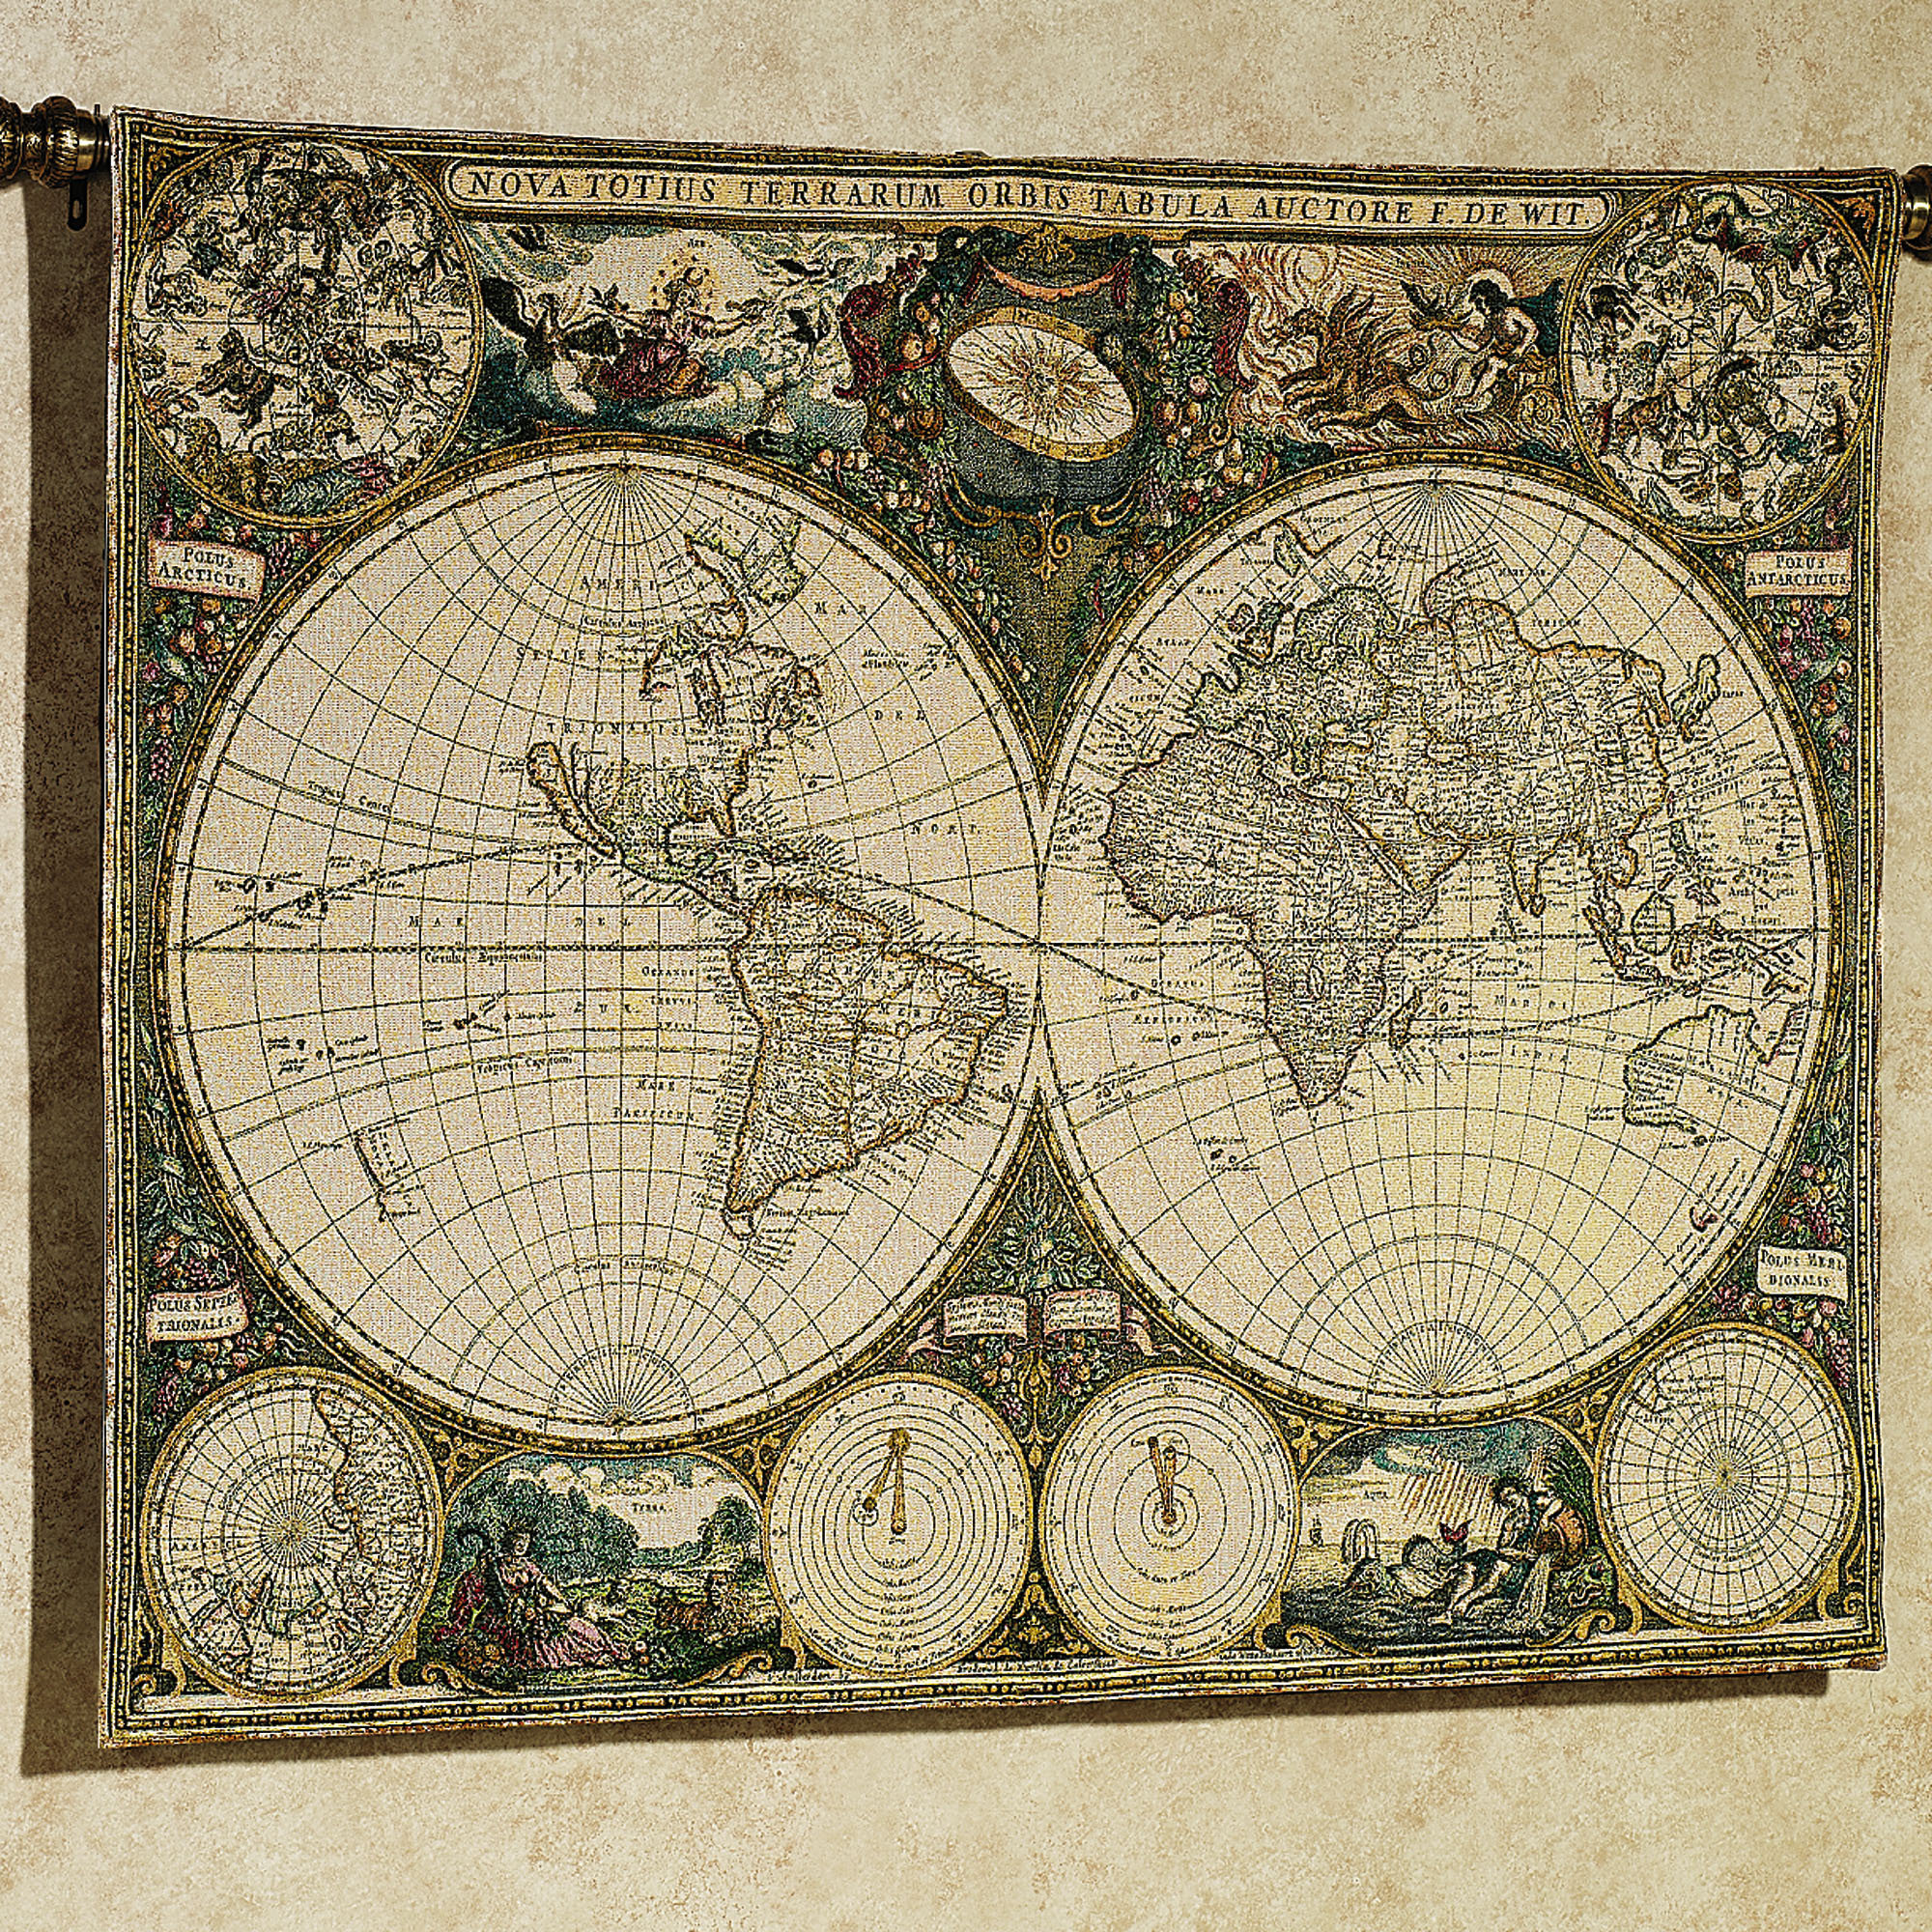 Old world map wallpaper border wallpapersafari old world map wallpaper border old world map wall tapestry 2000x2000 gumiabroncs Image collections